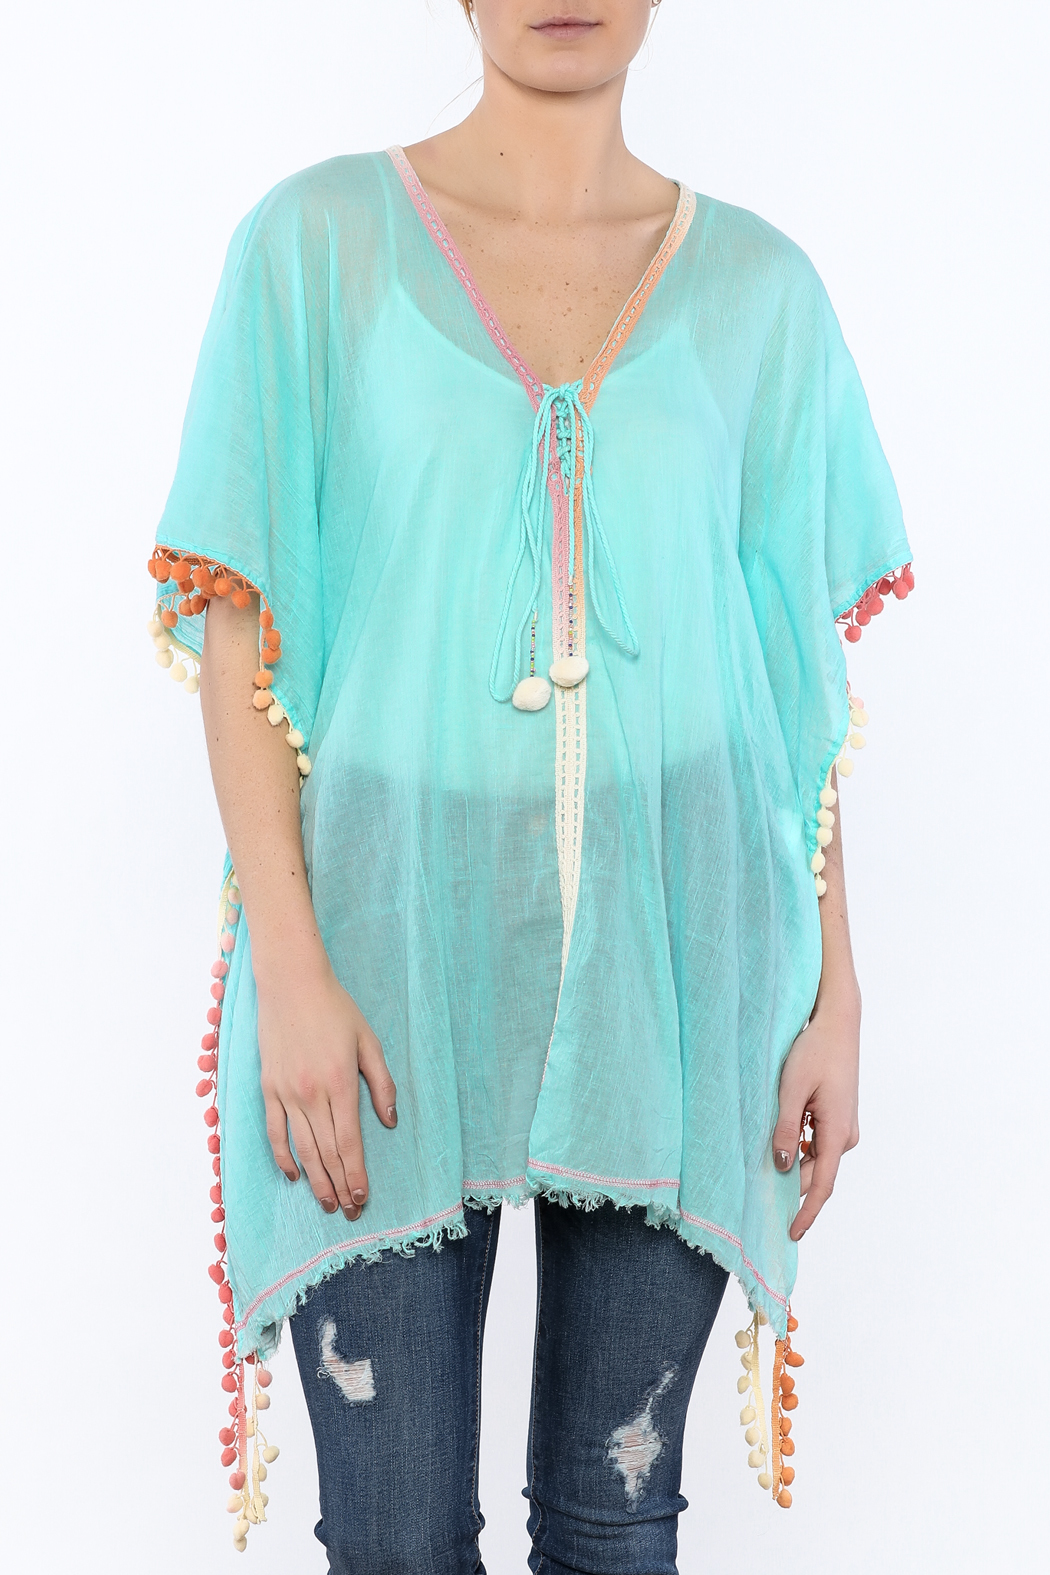 Z&L Europe Floral Pompom Tunic Top - Main Image